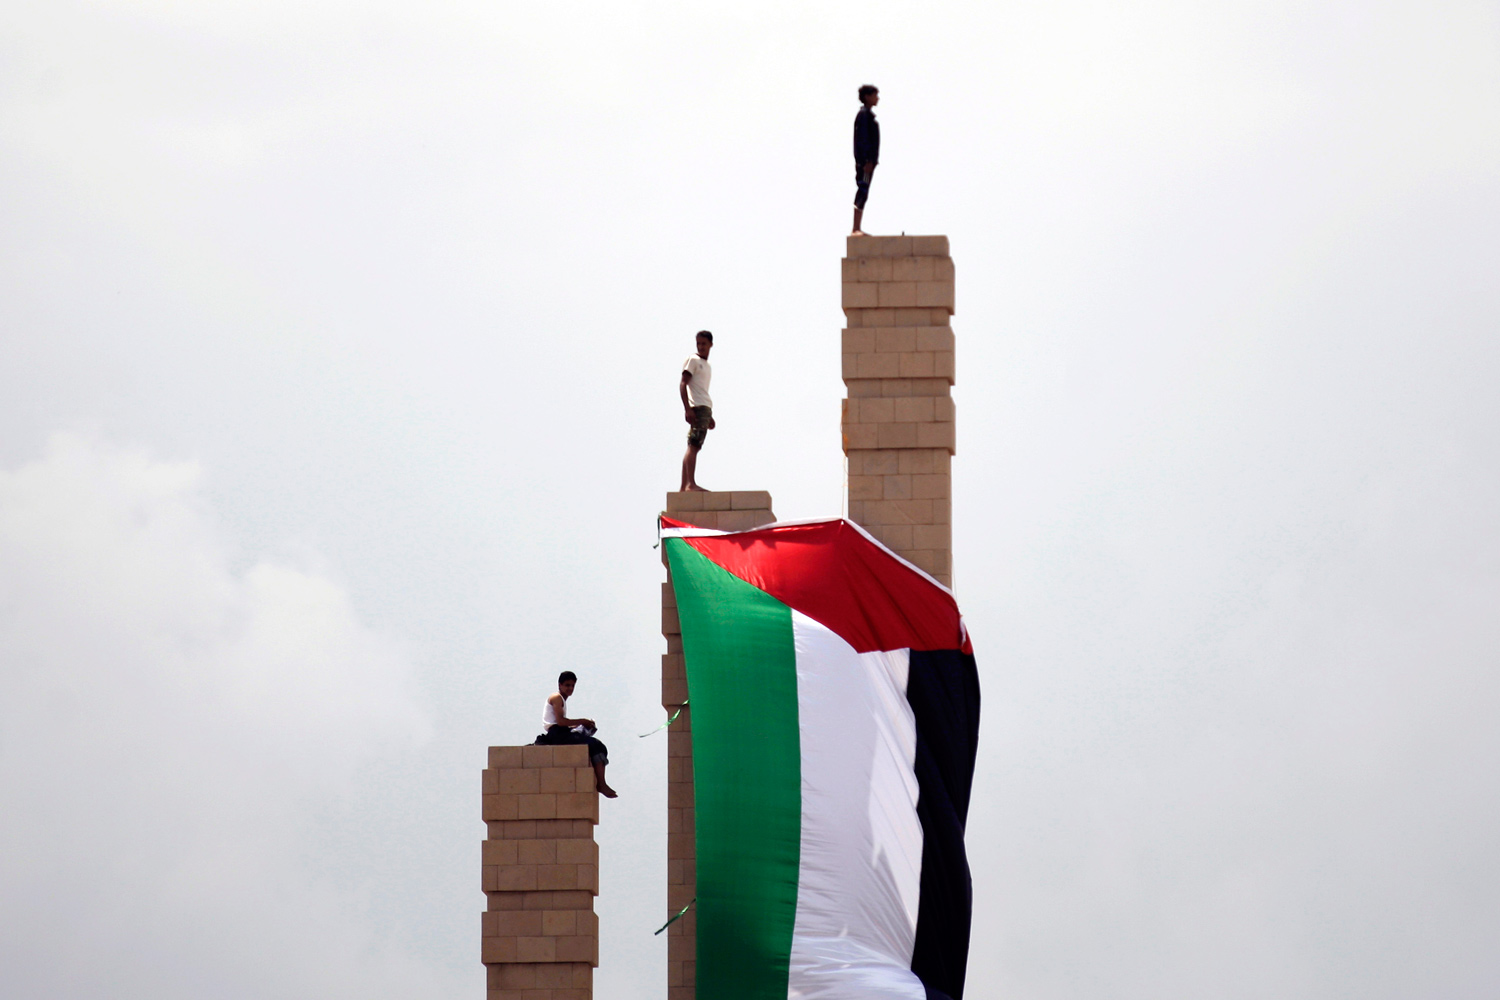 September 23, 2011. Supporters of Yemen's President Ali Abduallah Saleh gather at the Monument of the Unknown Soldier, where a Palestinian flag hangs during a rally celebrating his return to Sana'a, Yemen.